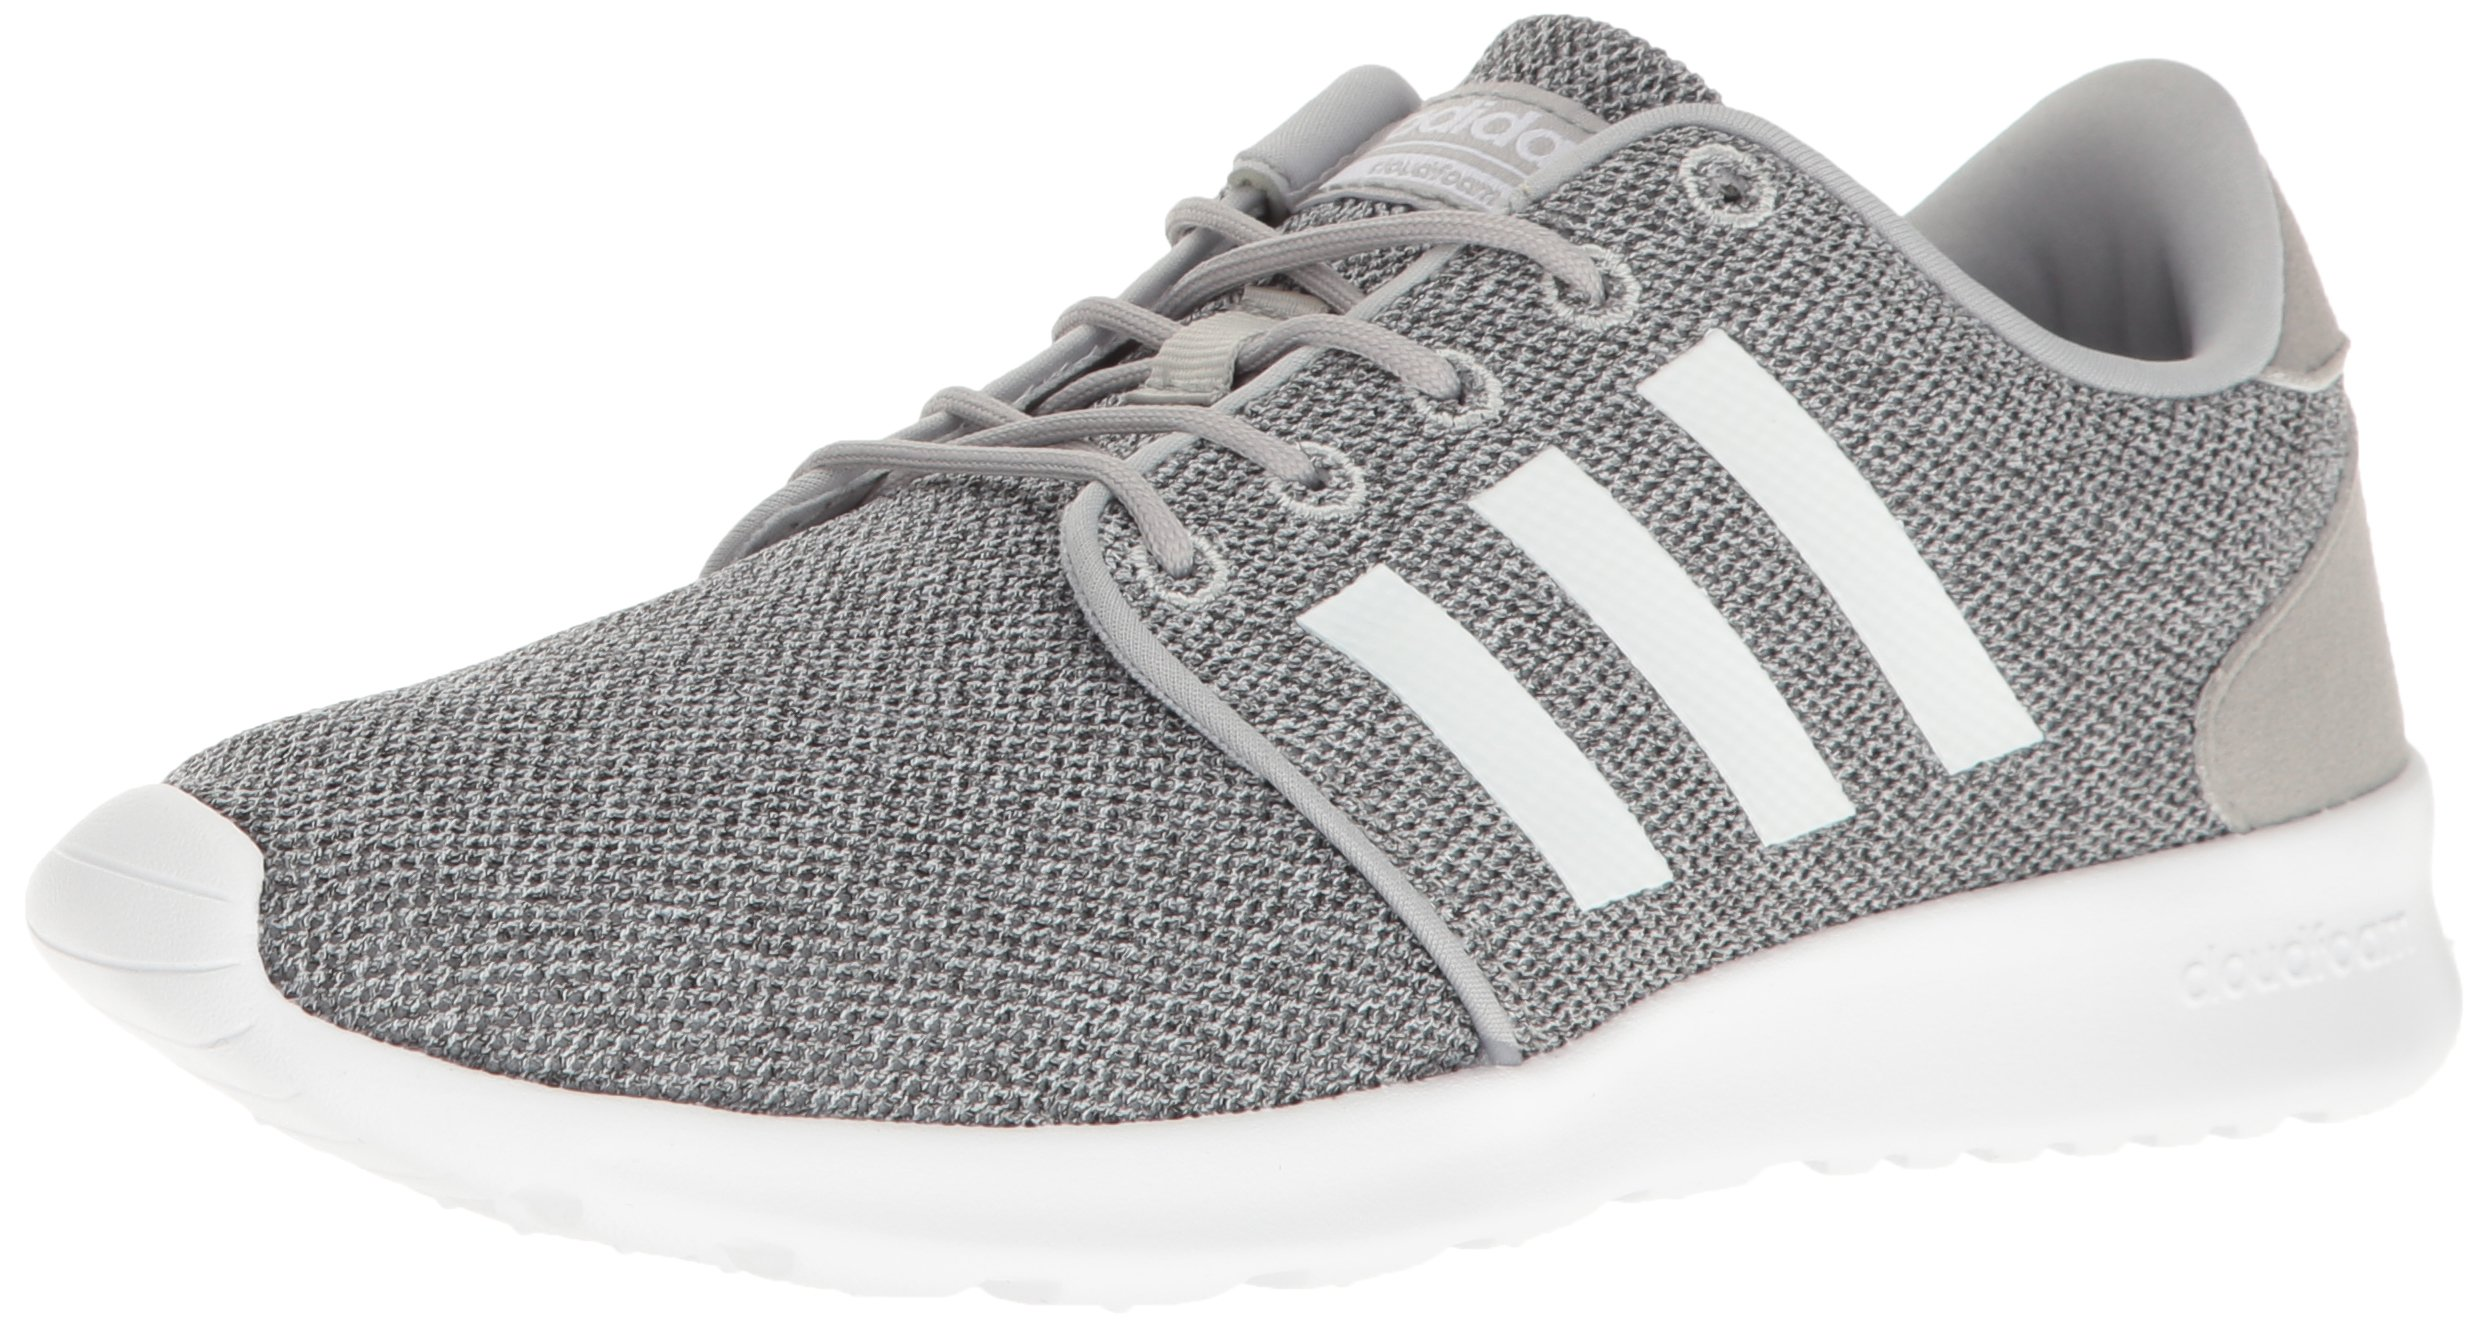 adidas Women's Cloudfoam Qt Racer w Running Shoe, Clear Onix/White/Light Onix, 7.5 M US by adidas